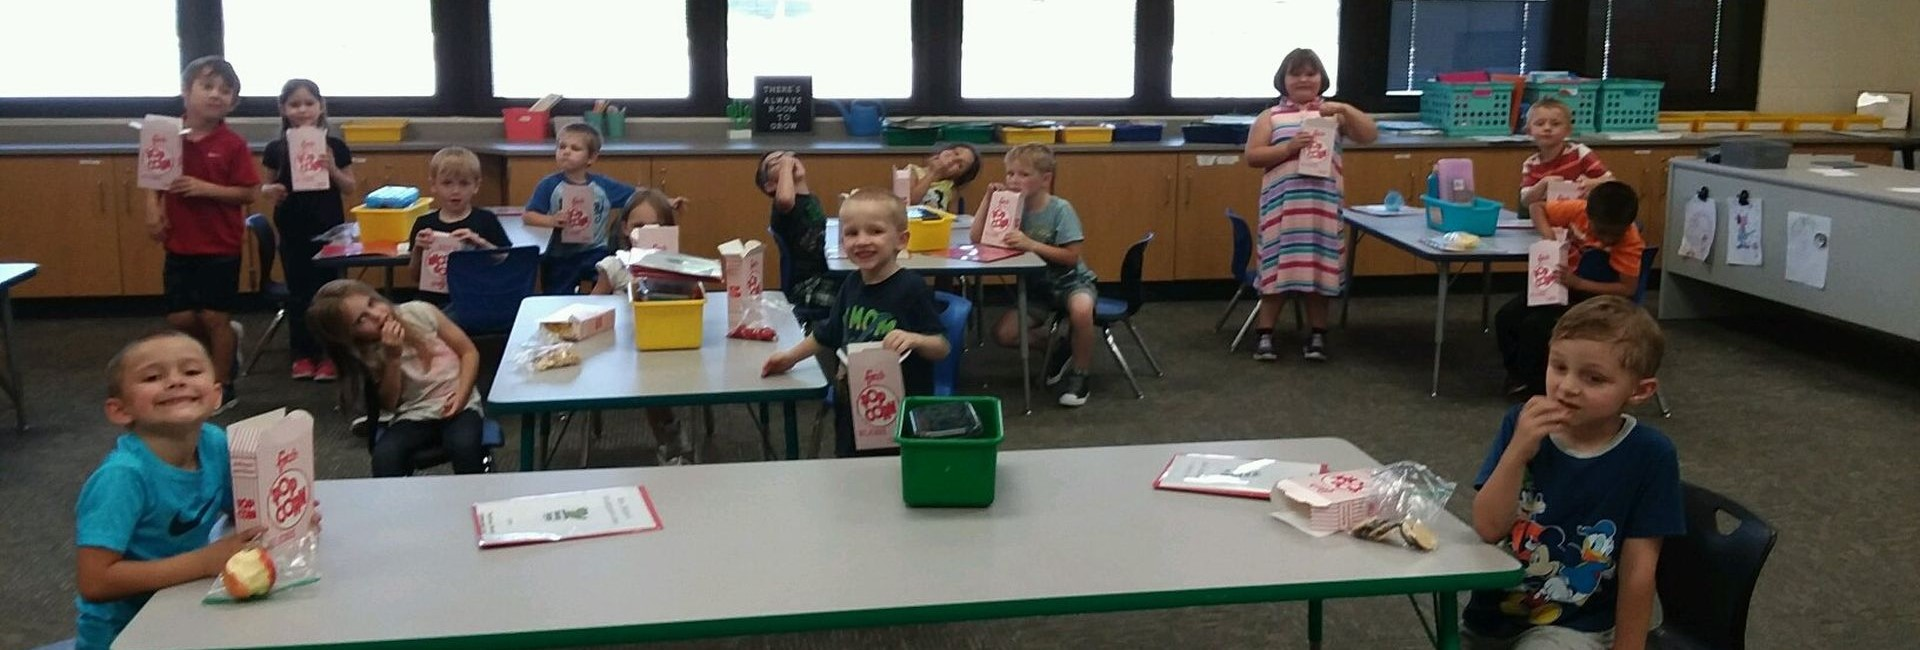 Mrs. DeBoer's class on popcorn day